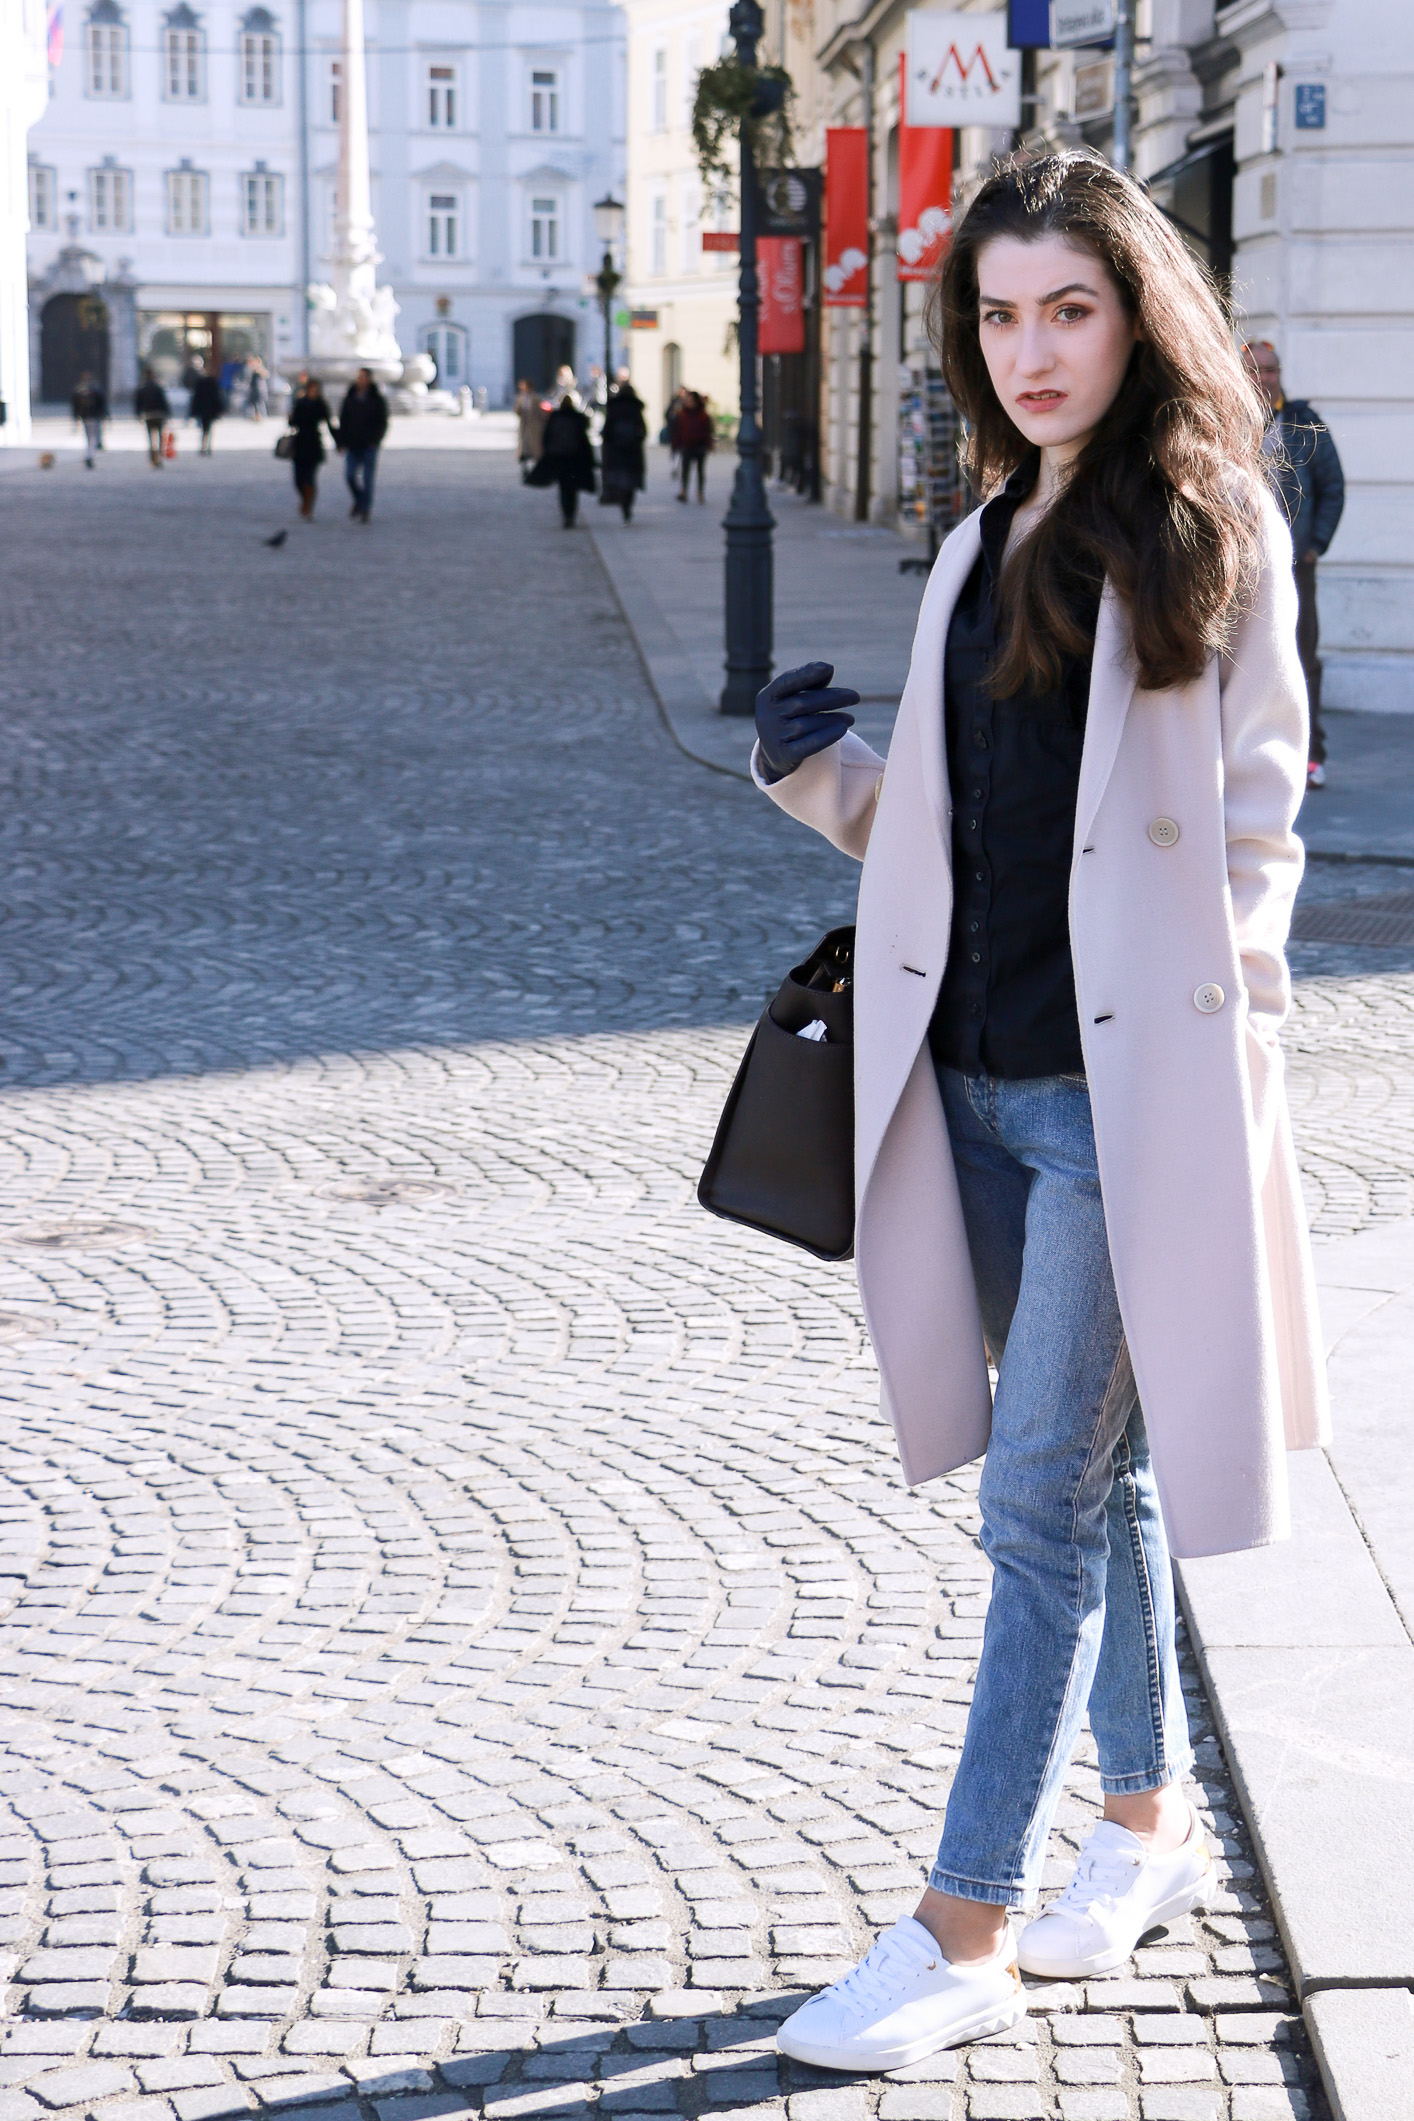 Fashion blogger Veronika Lipar of Brunette From Wall Street sharing her weekend chic casual style